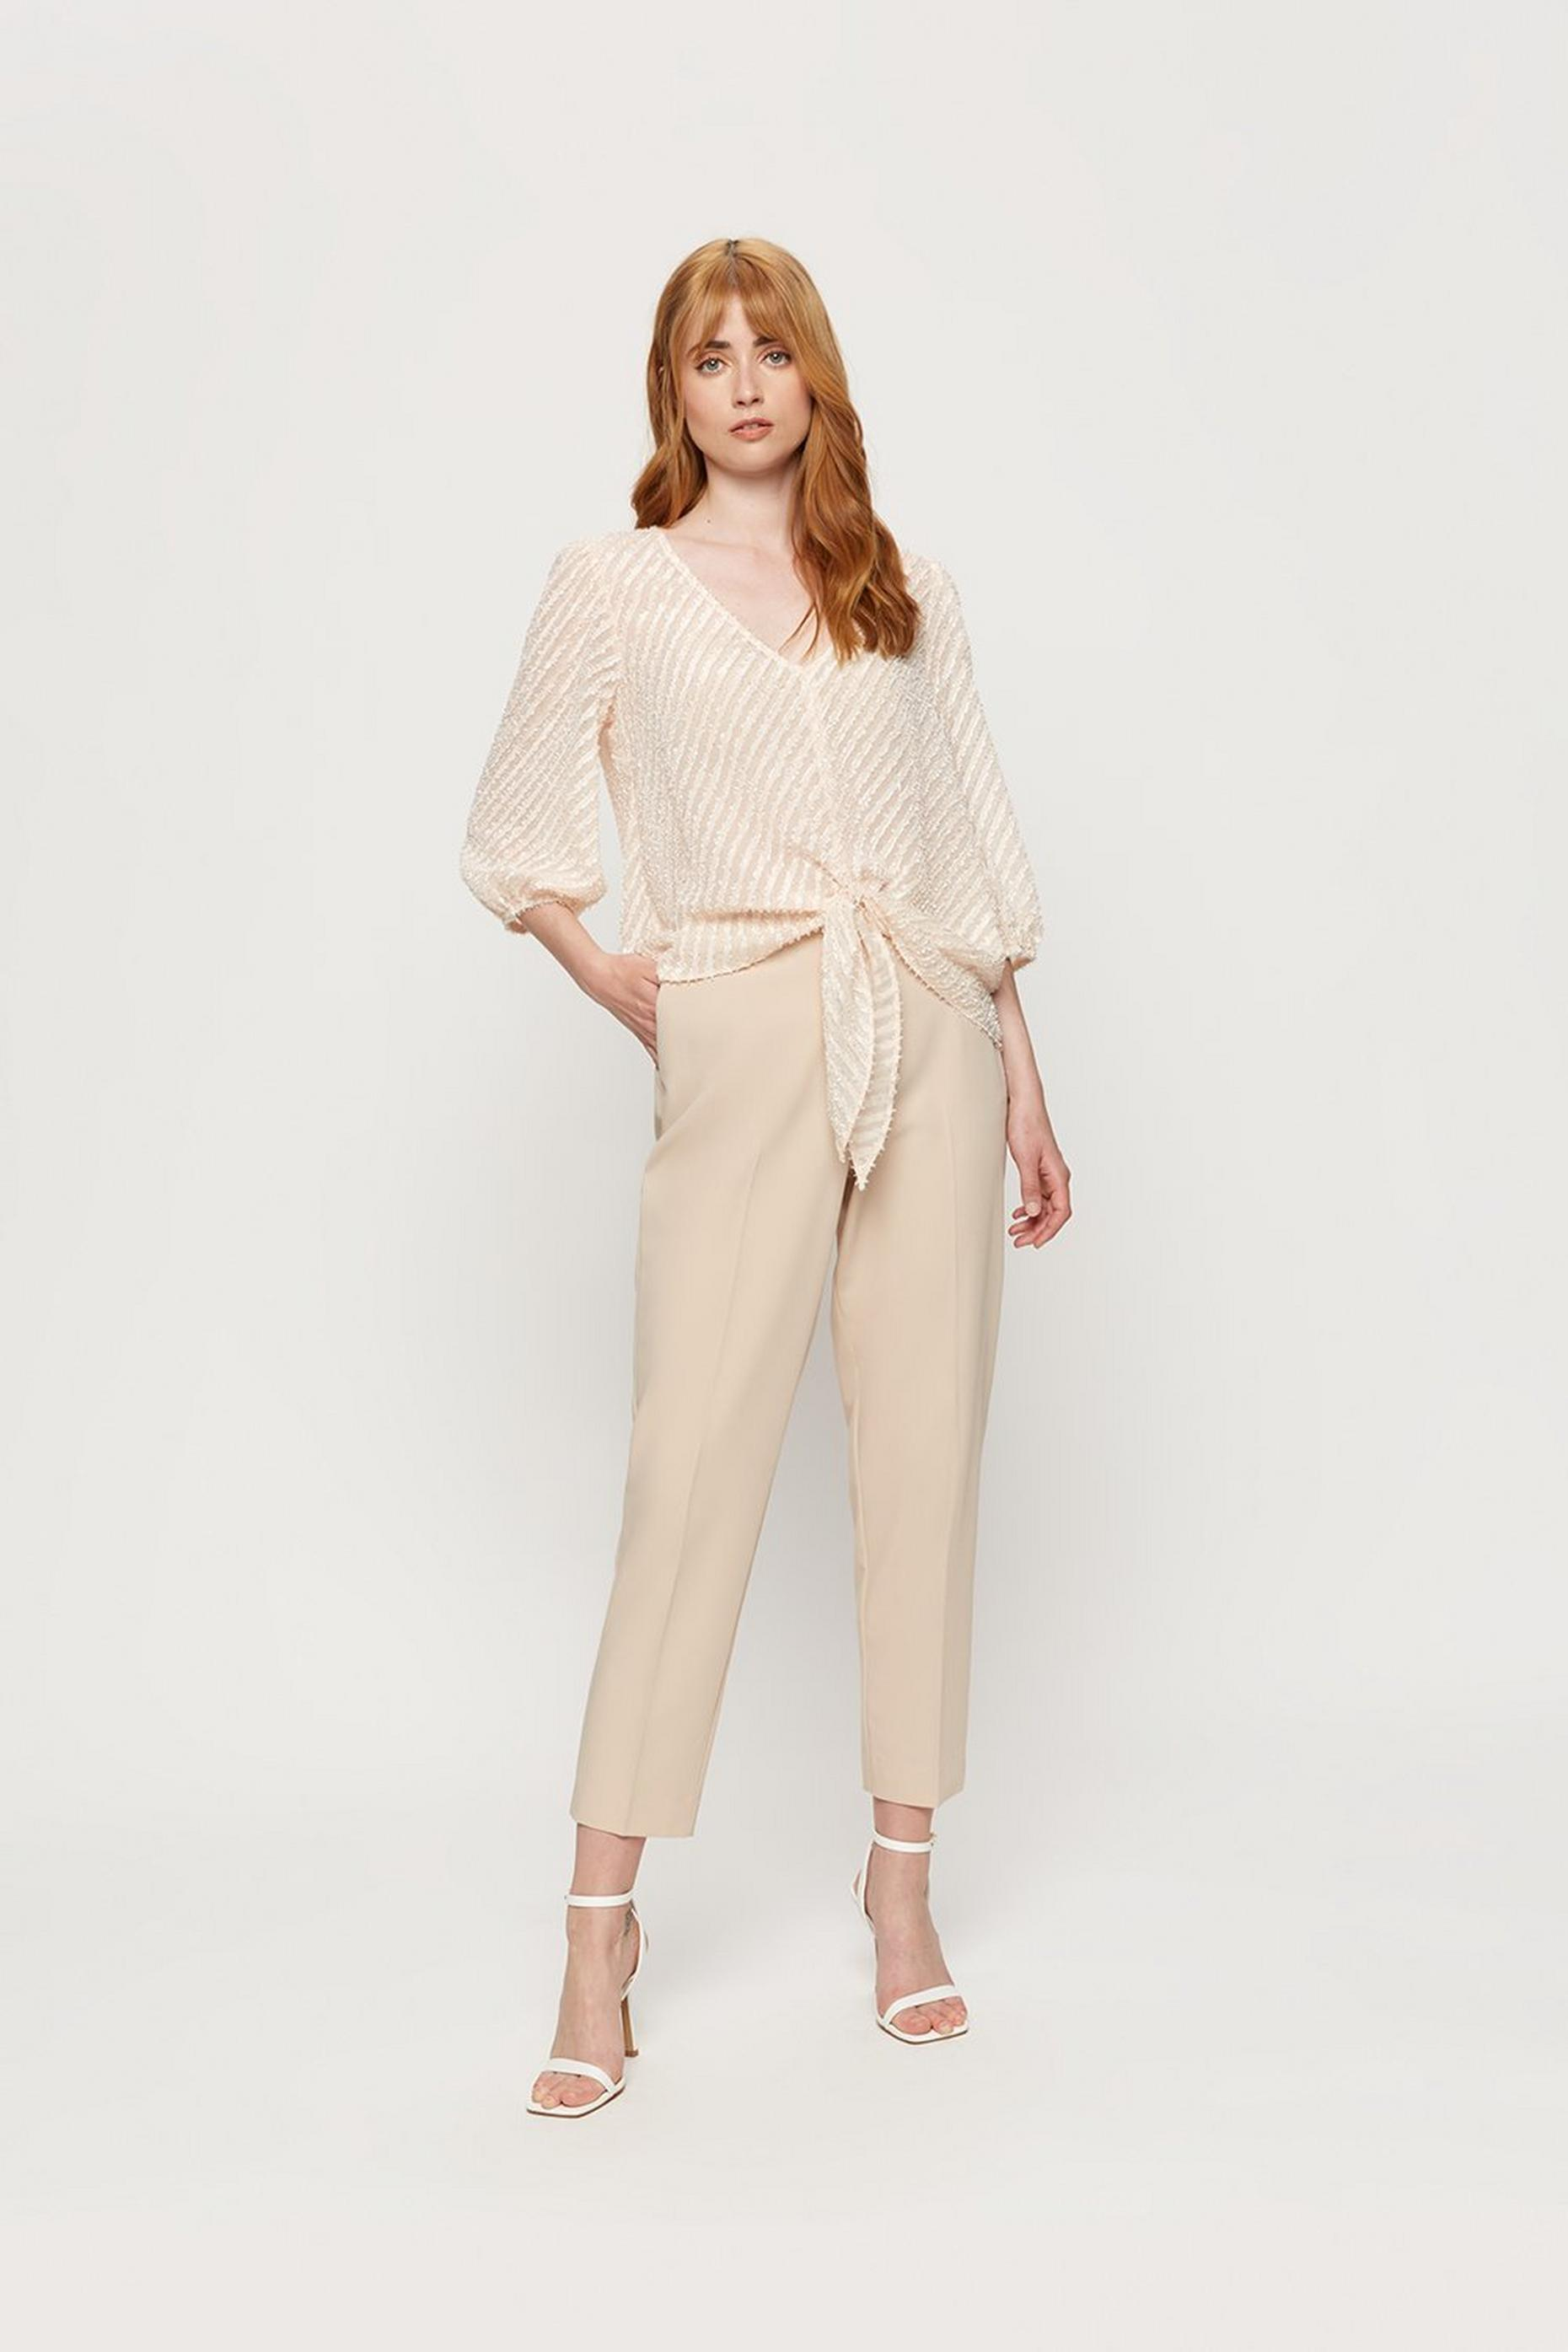 Blush Textured Tie Front Top